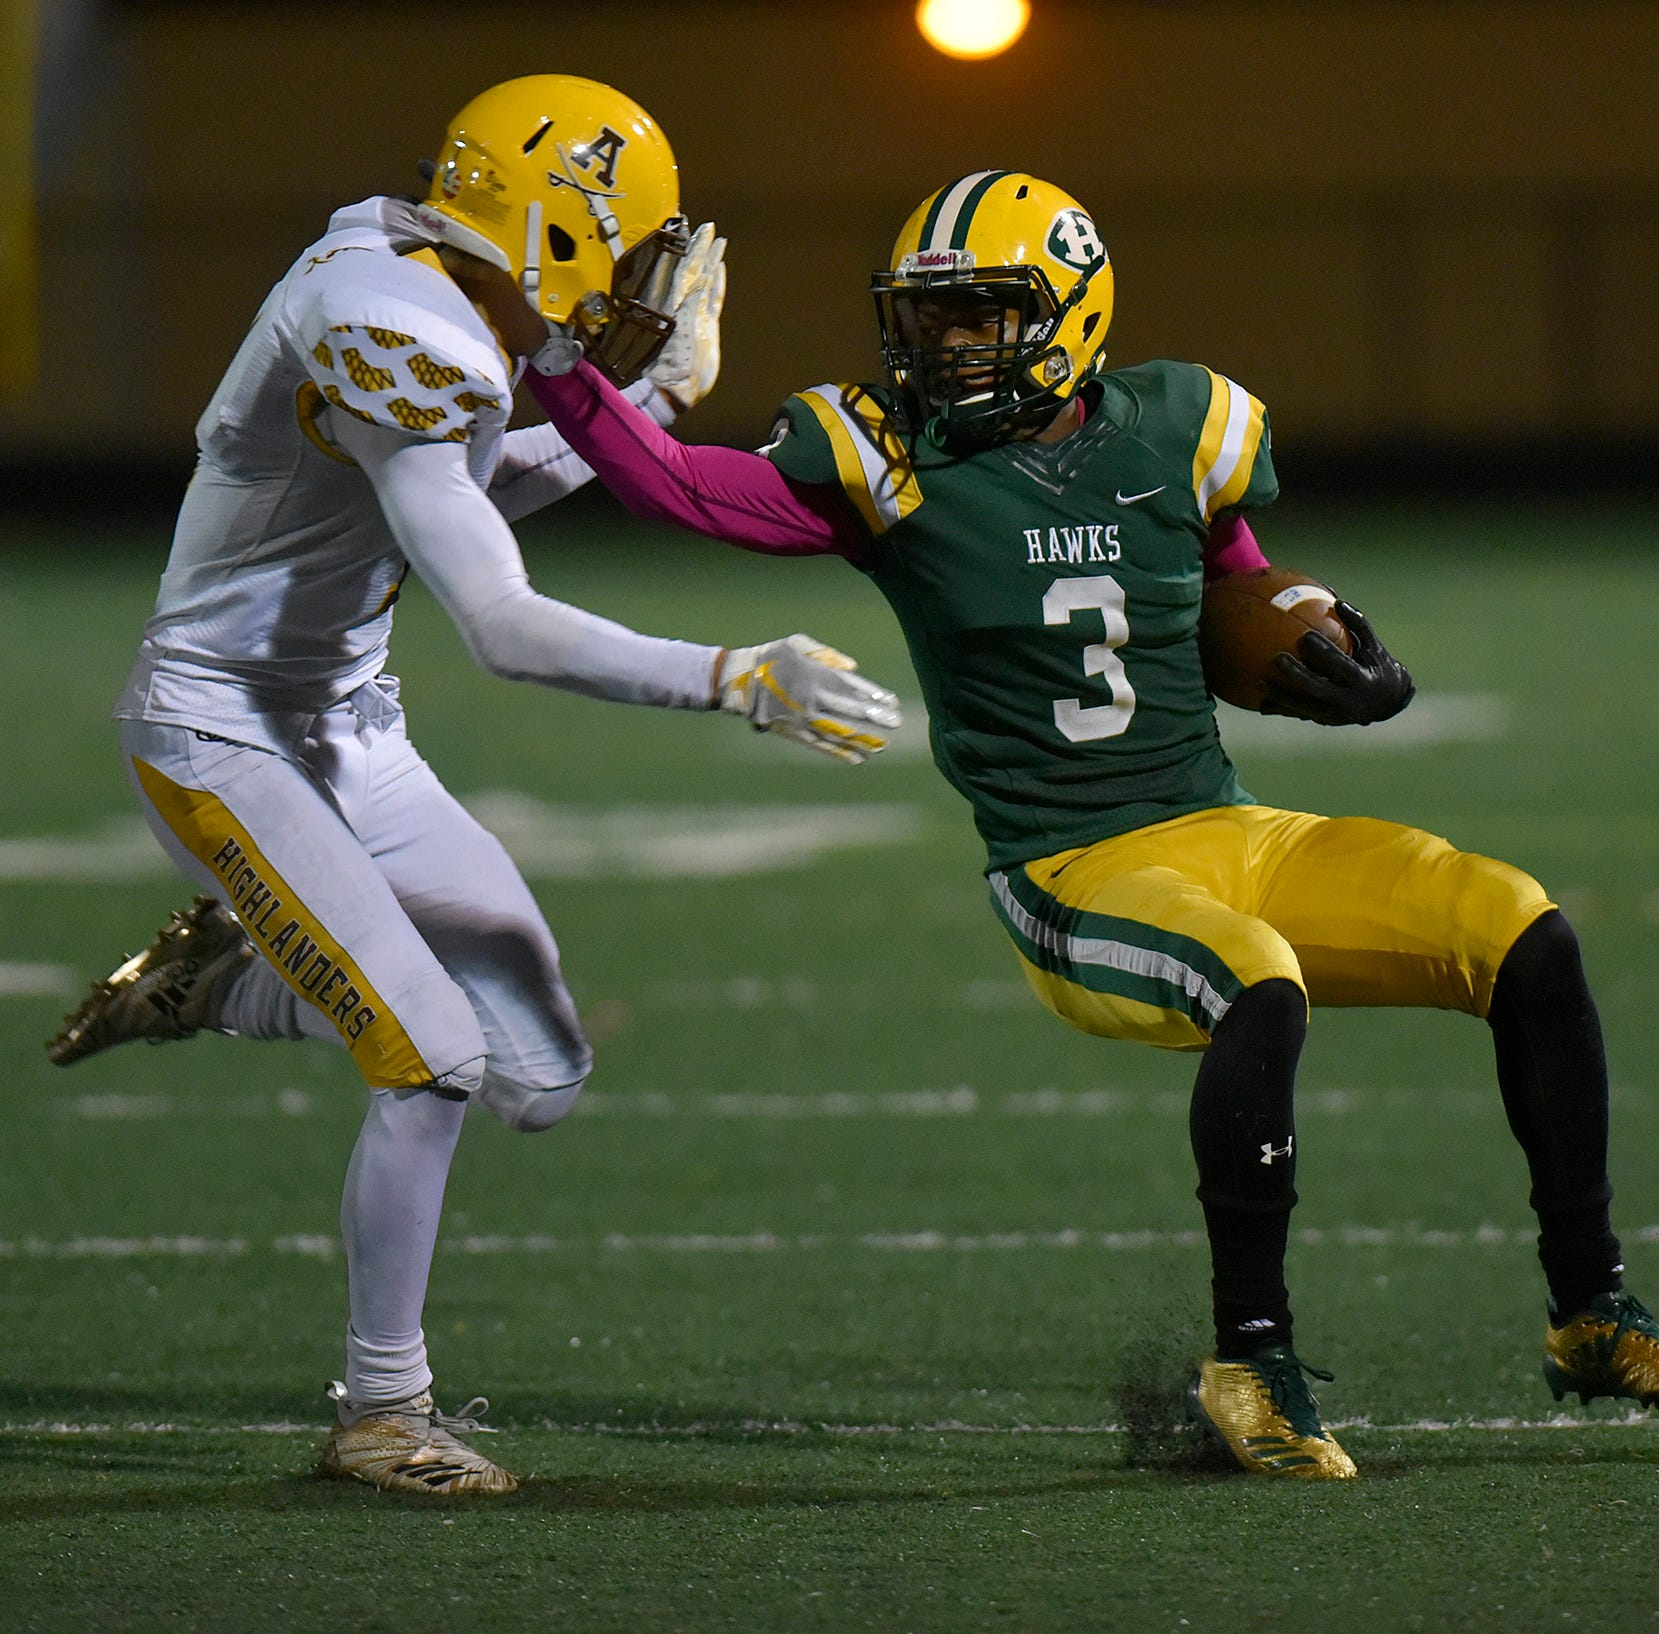 Bottom line? Harrison looking to win its final game to secure a playoff berth